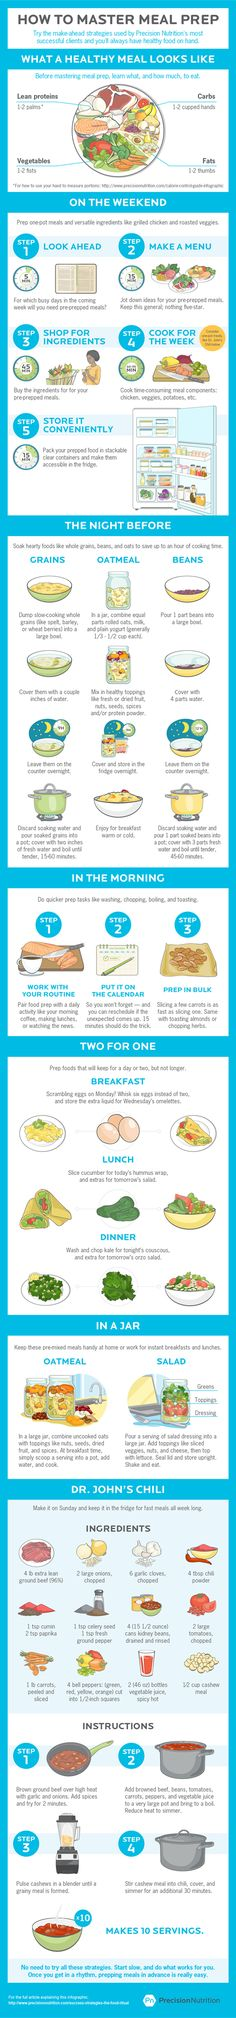 A Simplified Guide To Mastering Meal Prep